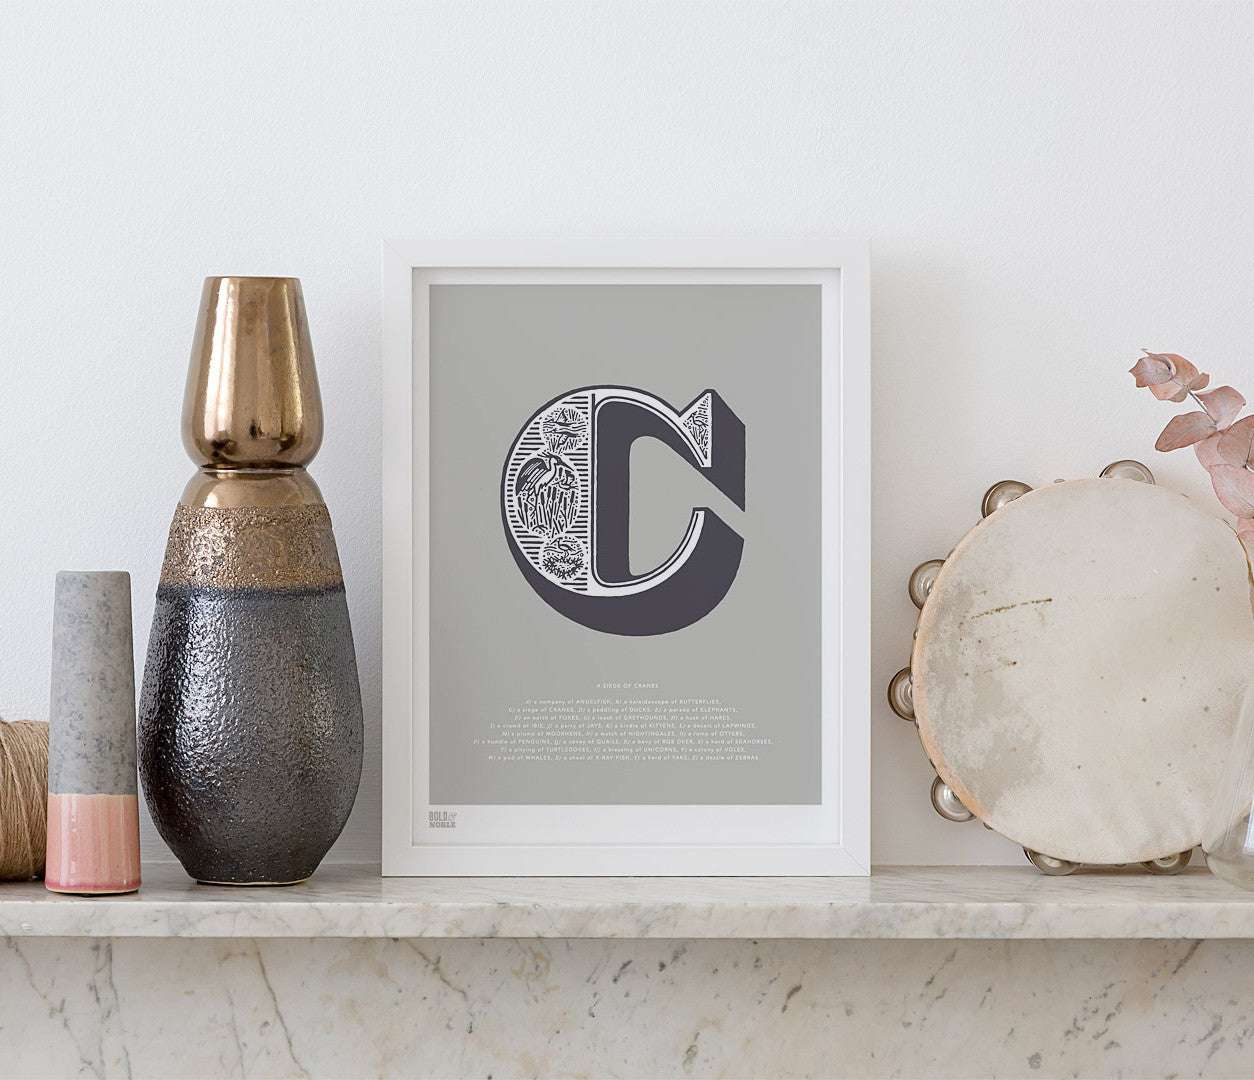 Pictures and Wall Art, Screen Printed Illustrated Letter C design in putty grey